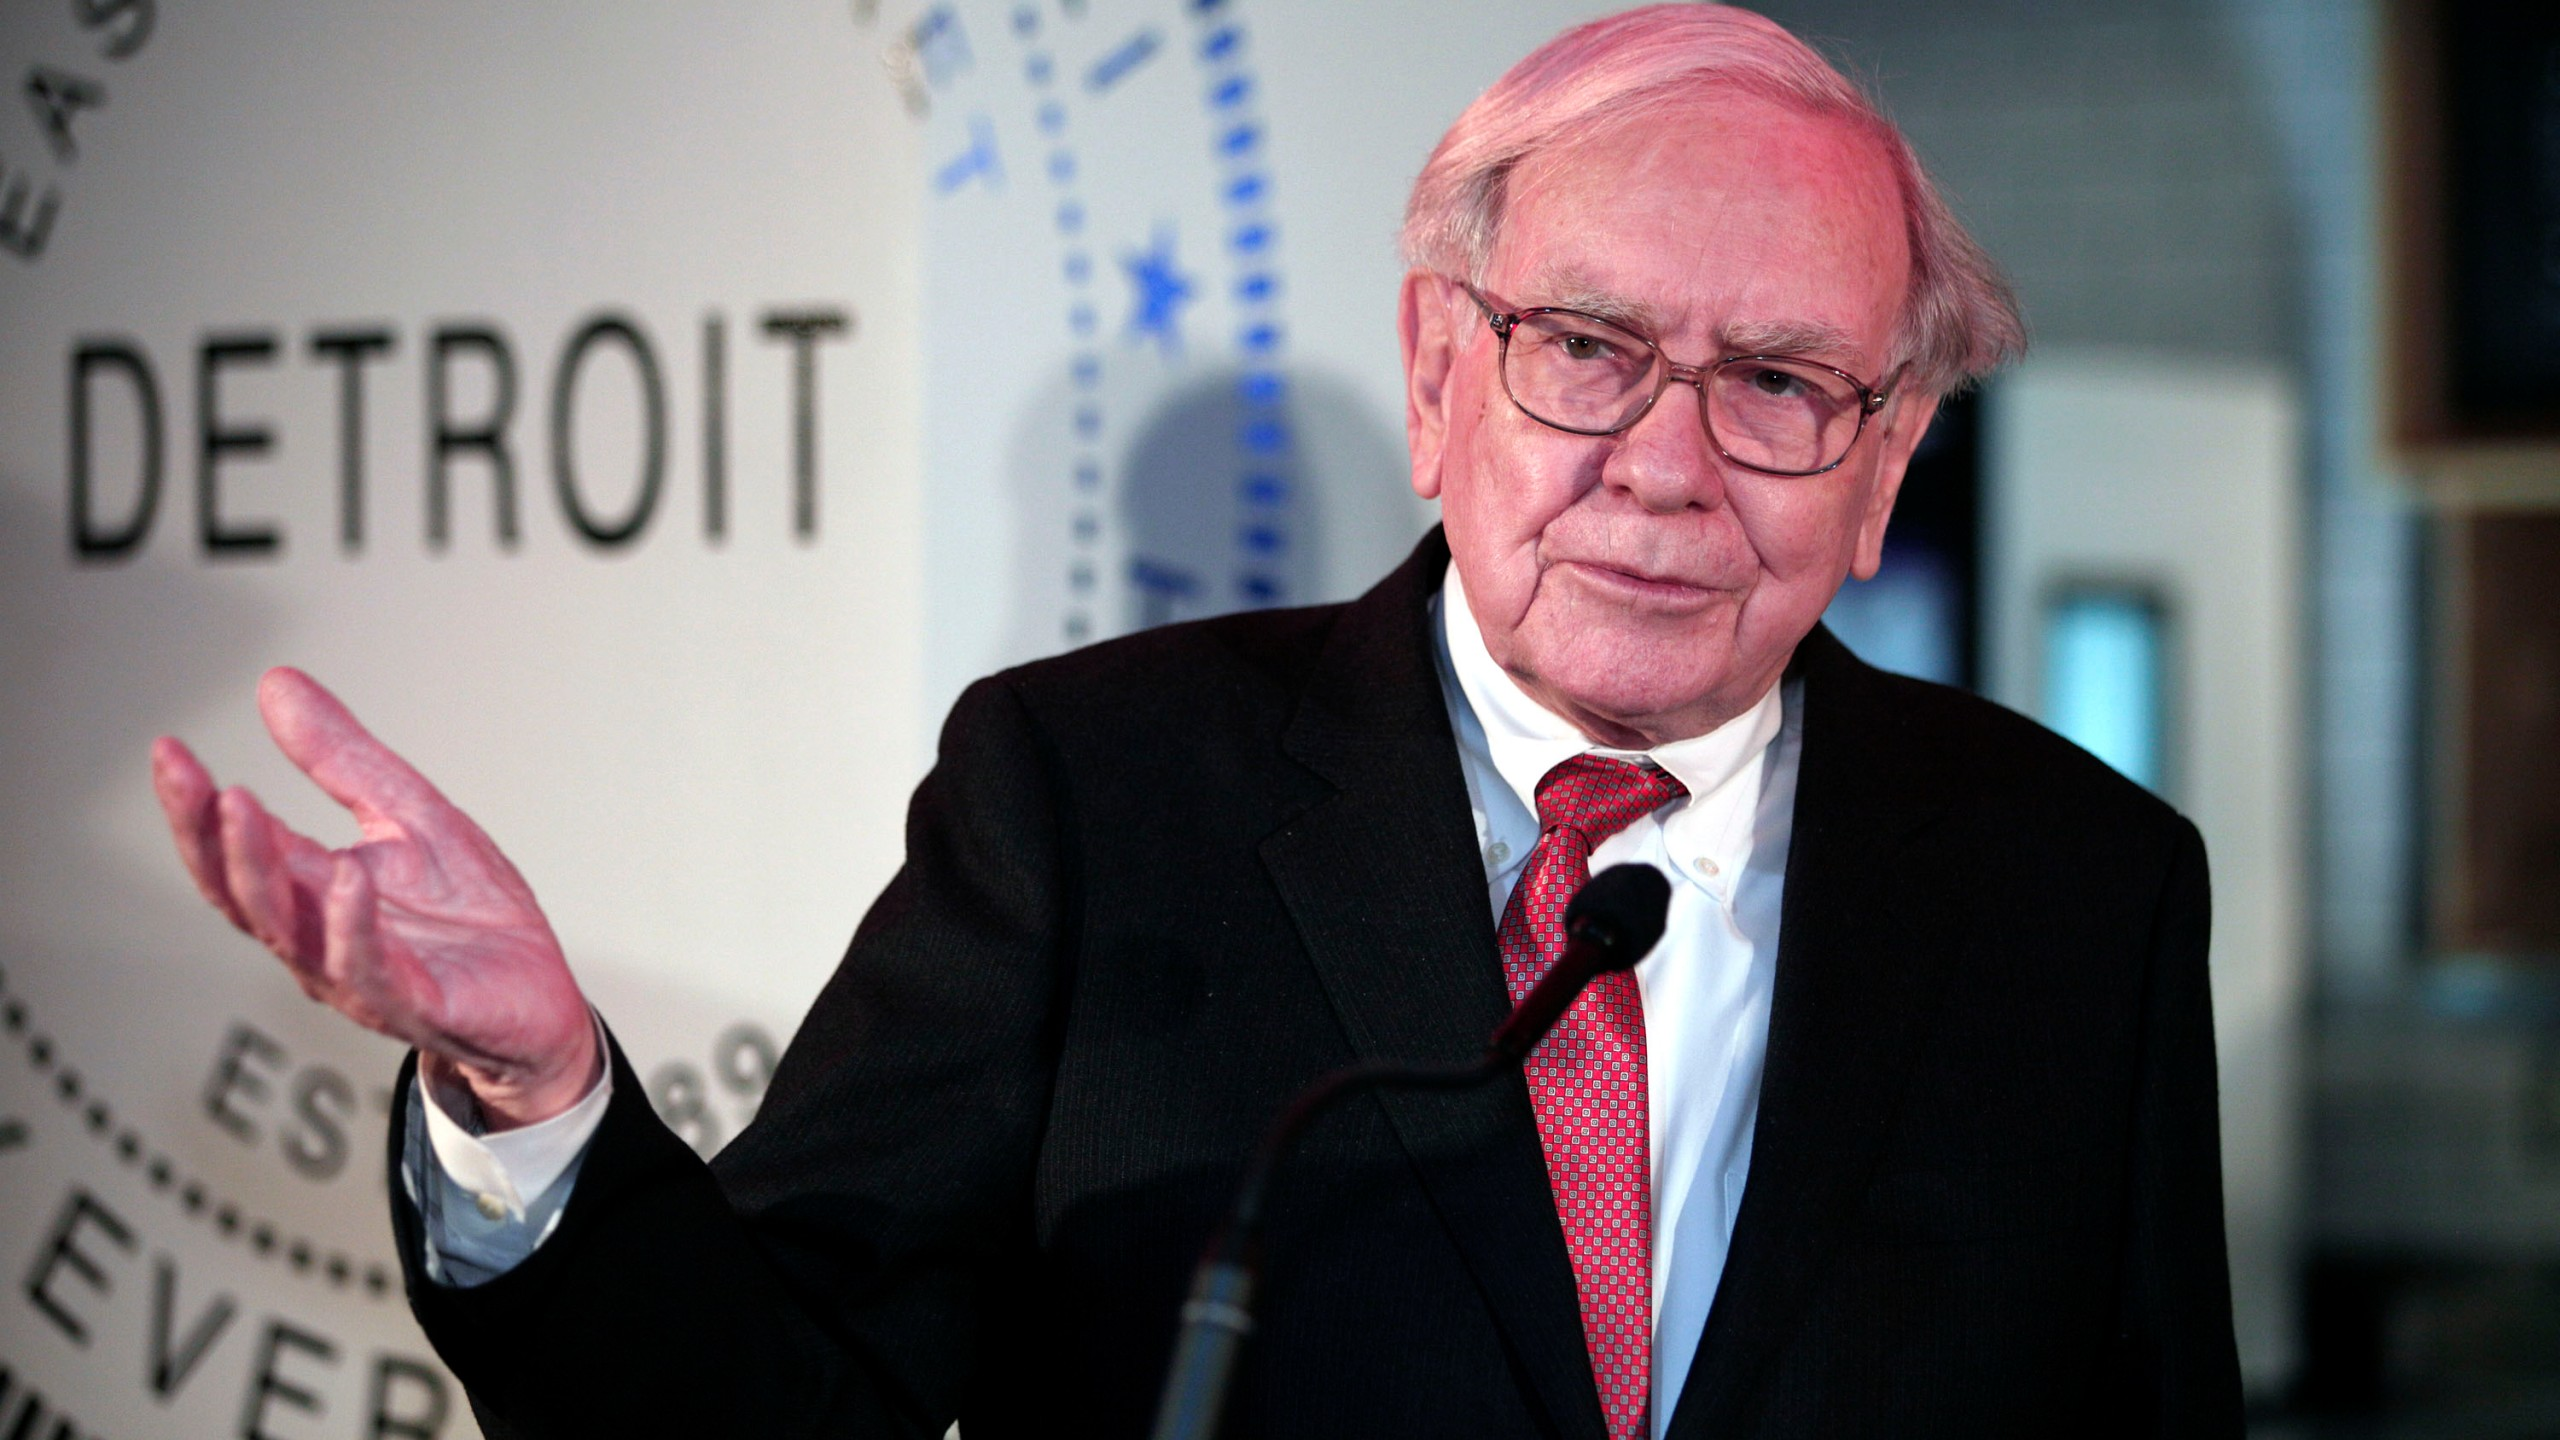 Warren Buffett, Chairman and CEO of Berkshire Hathaway and Co-Chairman of Goldman Sachs 10,000 Small Businesses Program,